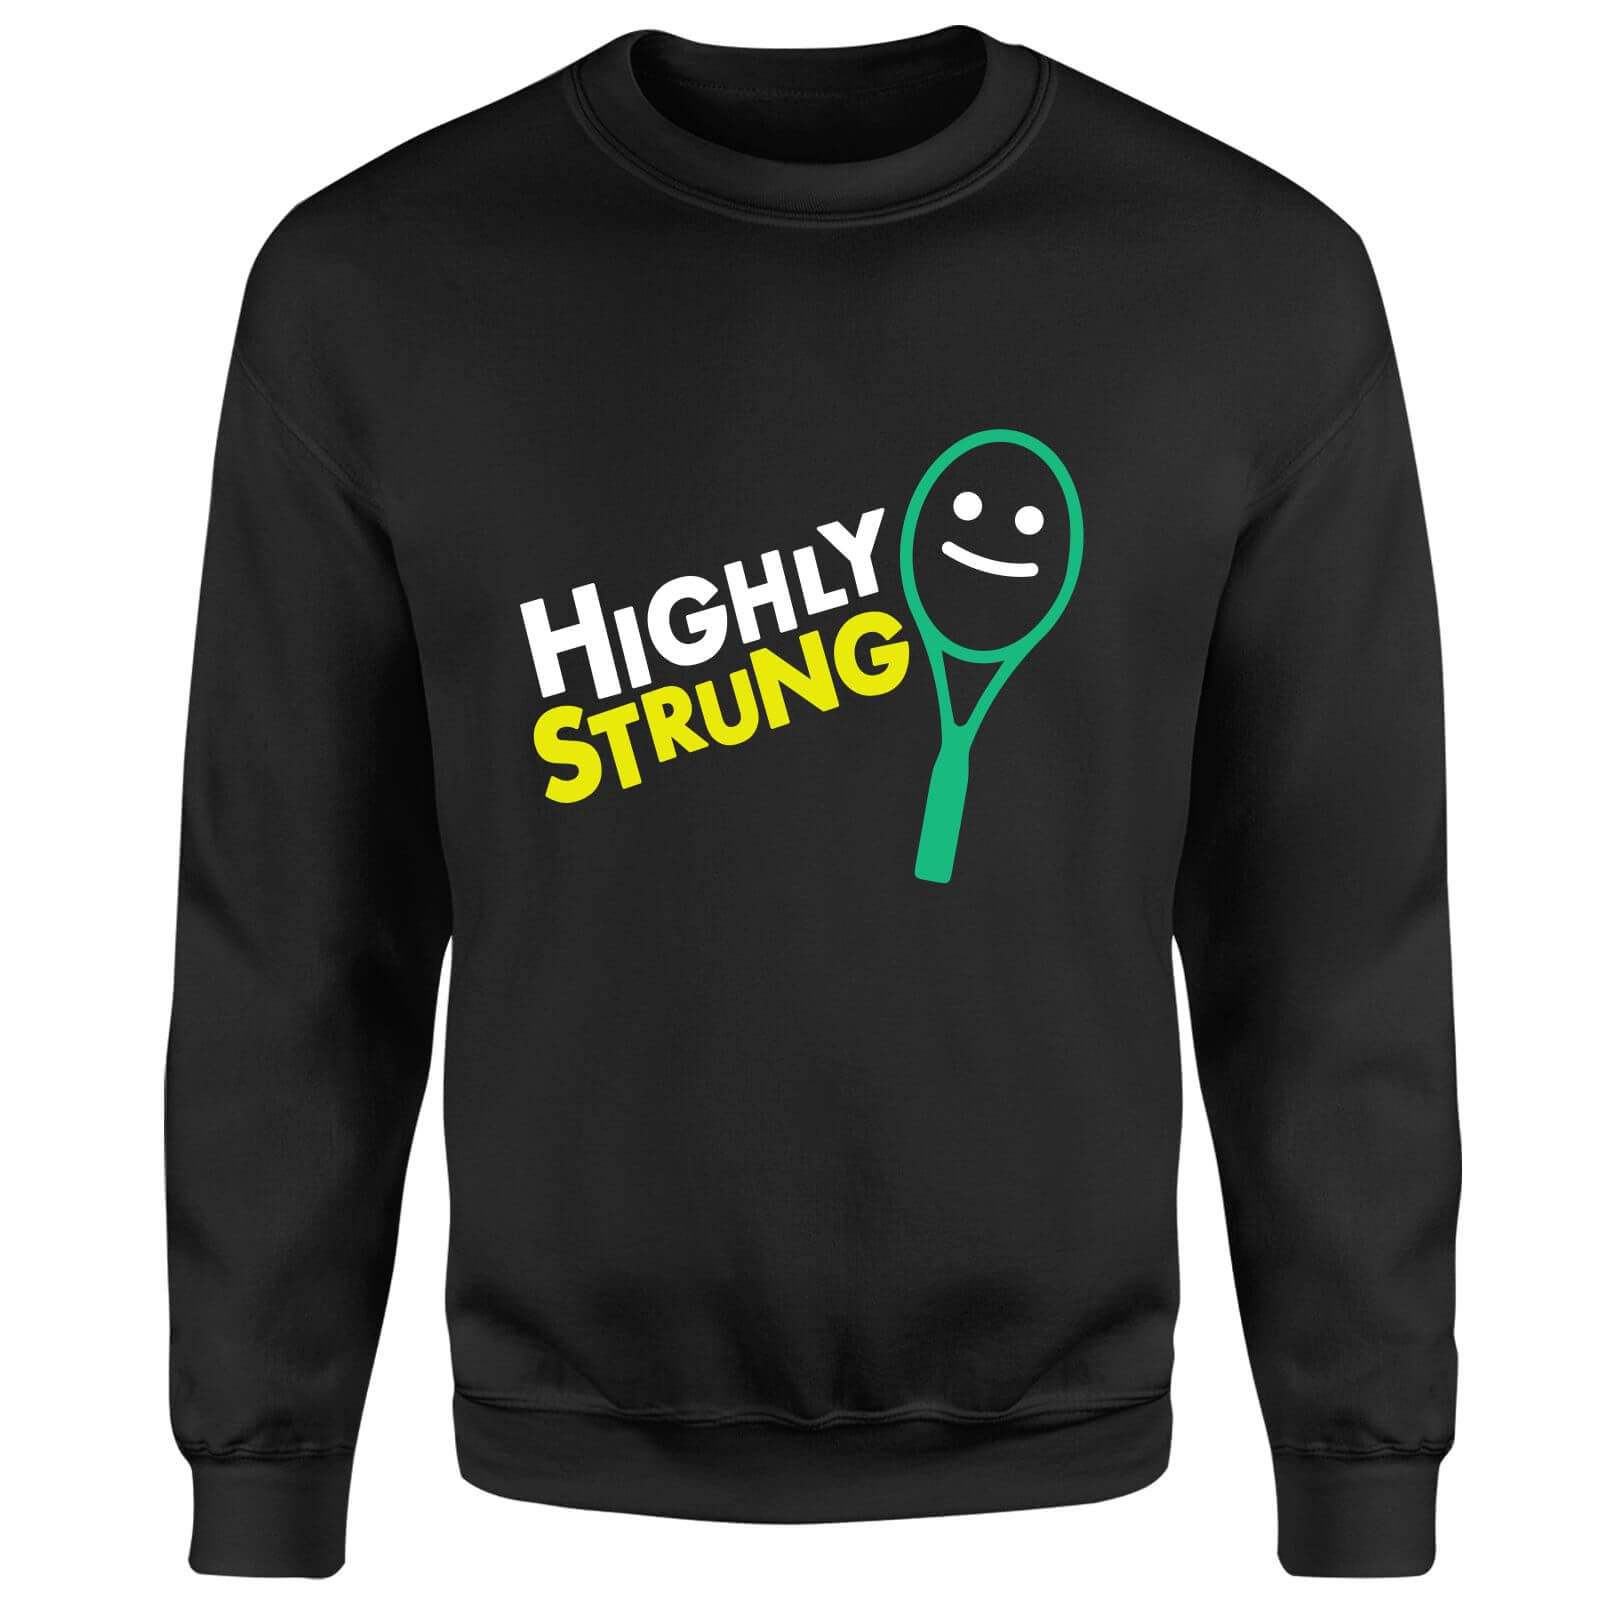 Highly Strung Sweatshirt - Black